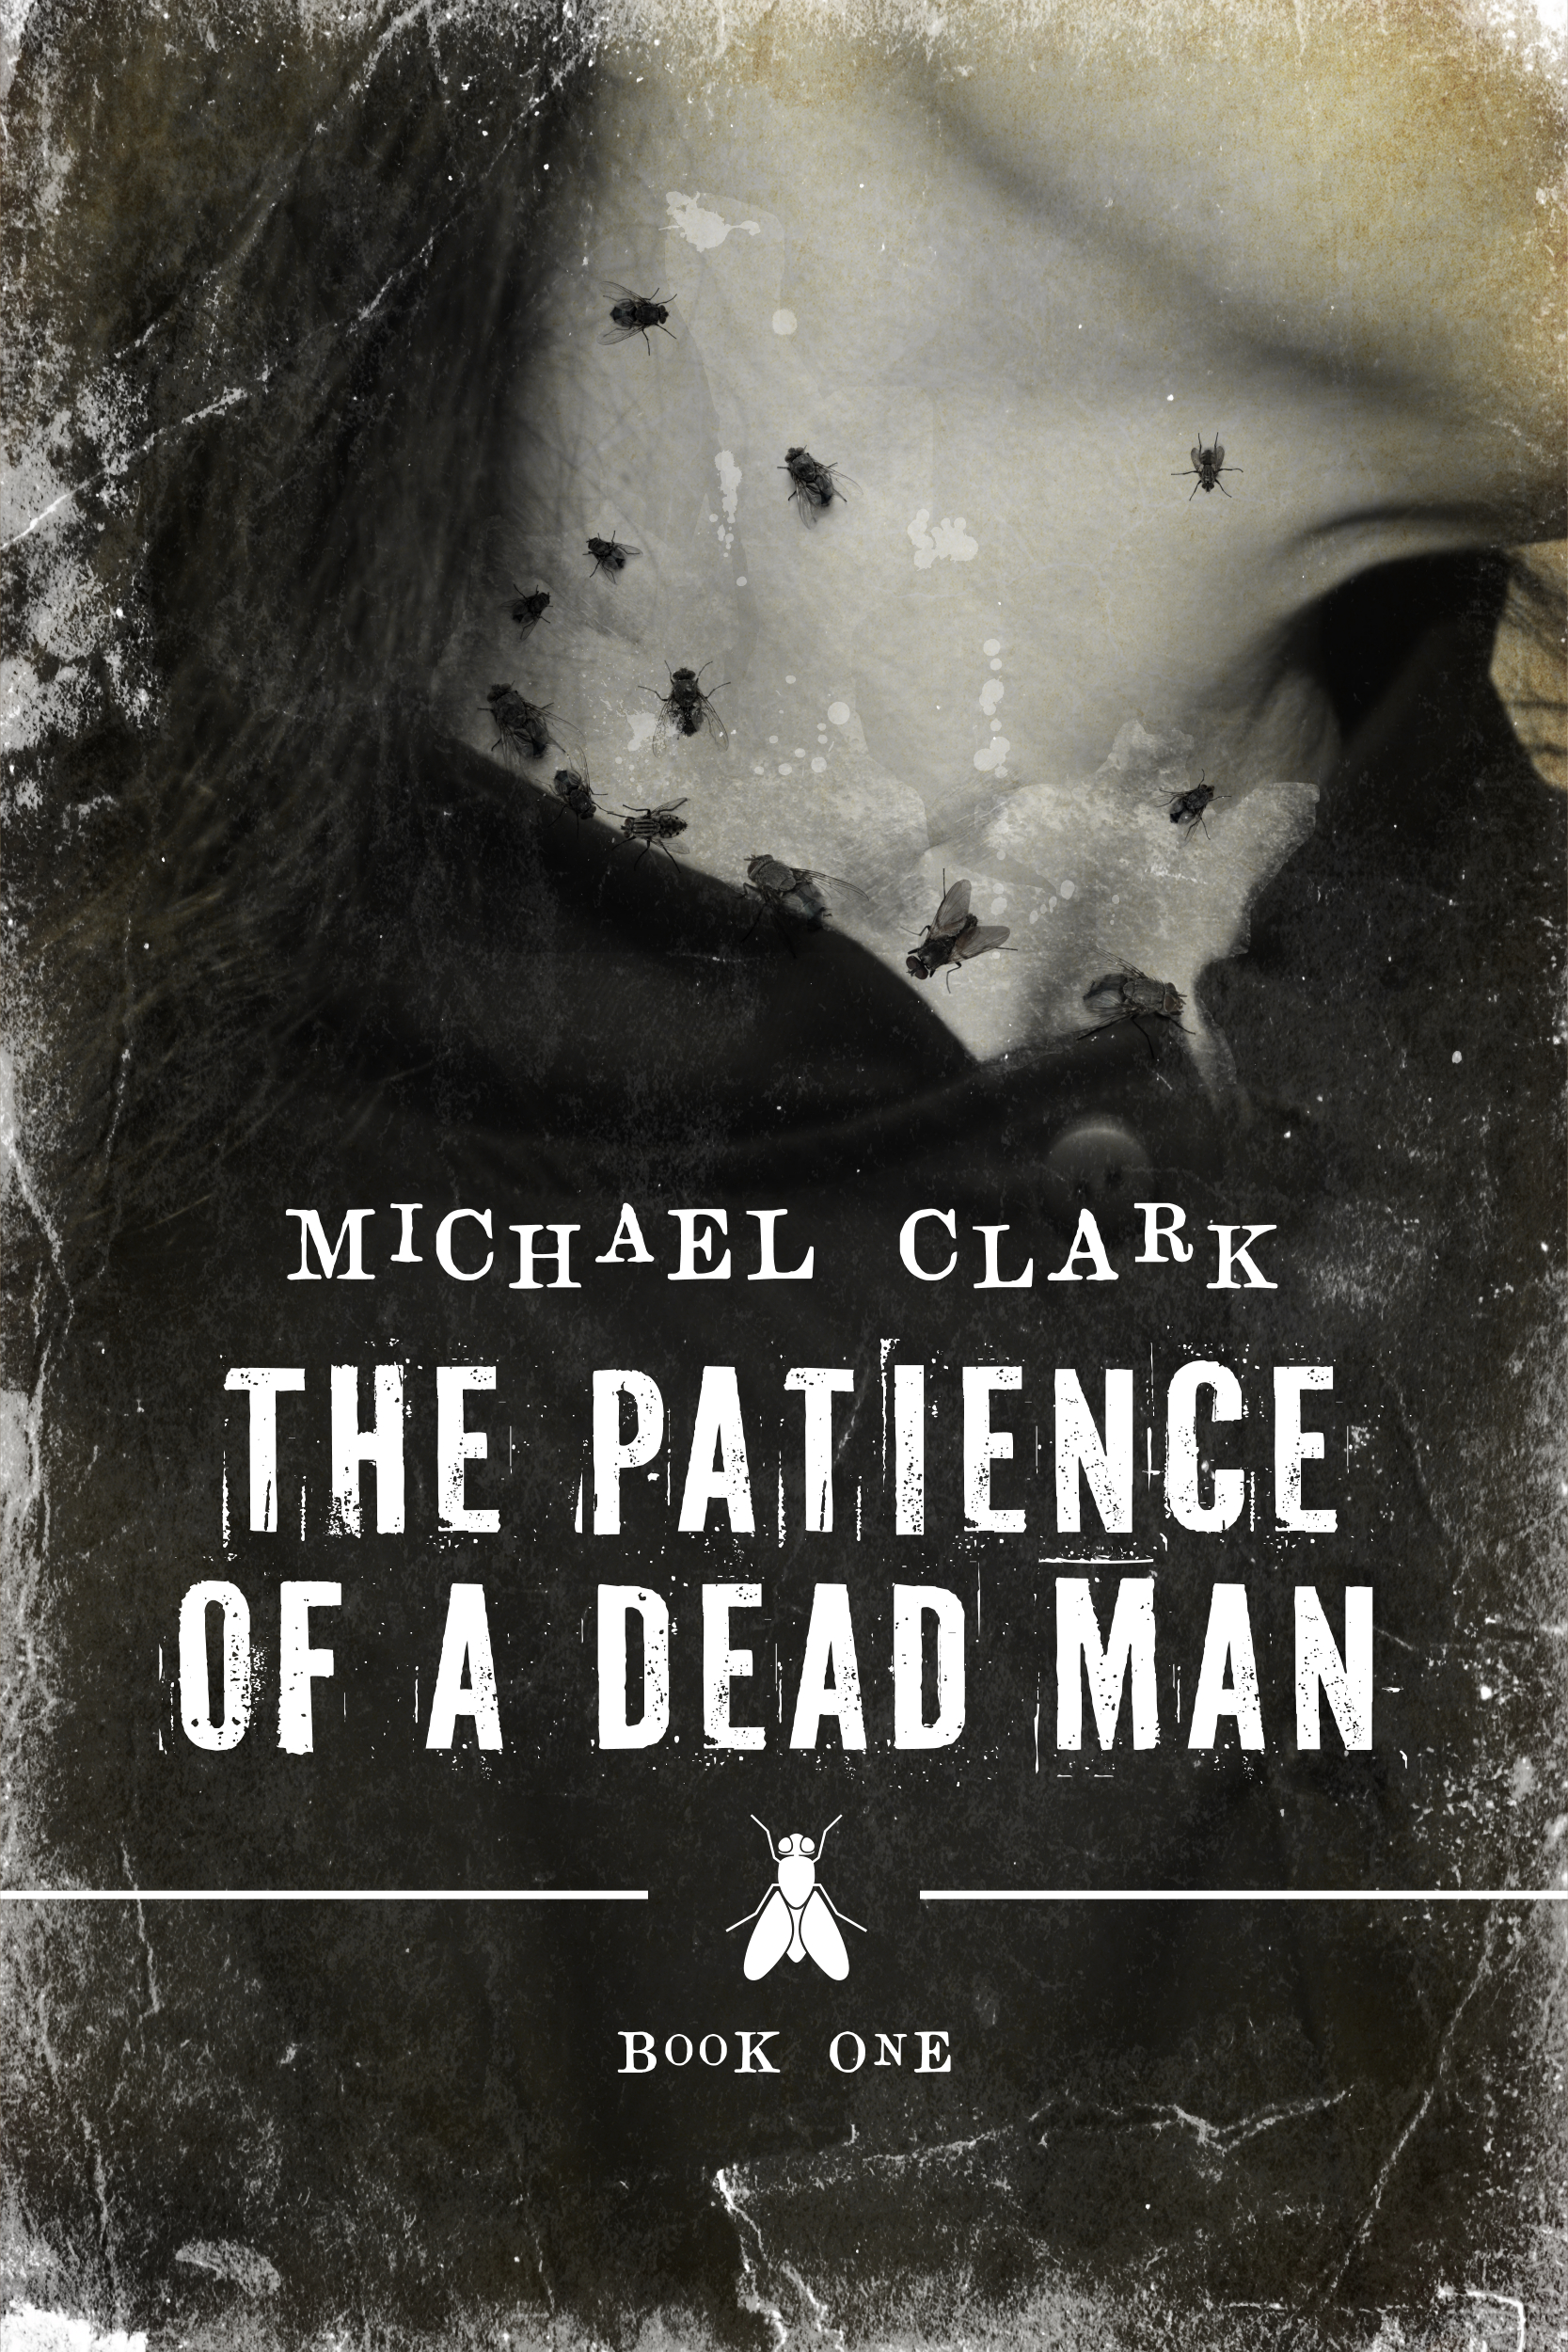 The Patience of a Dead Man KINDLE Book One Cover